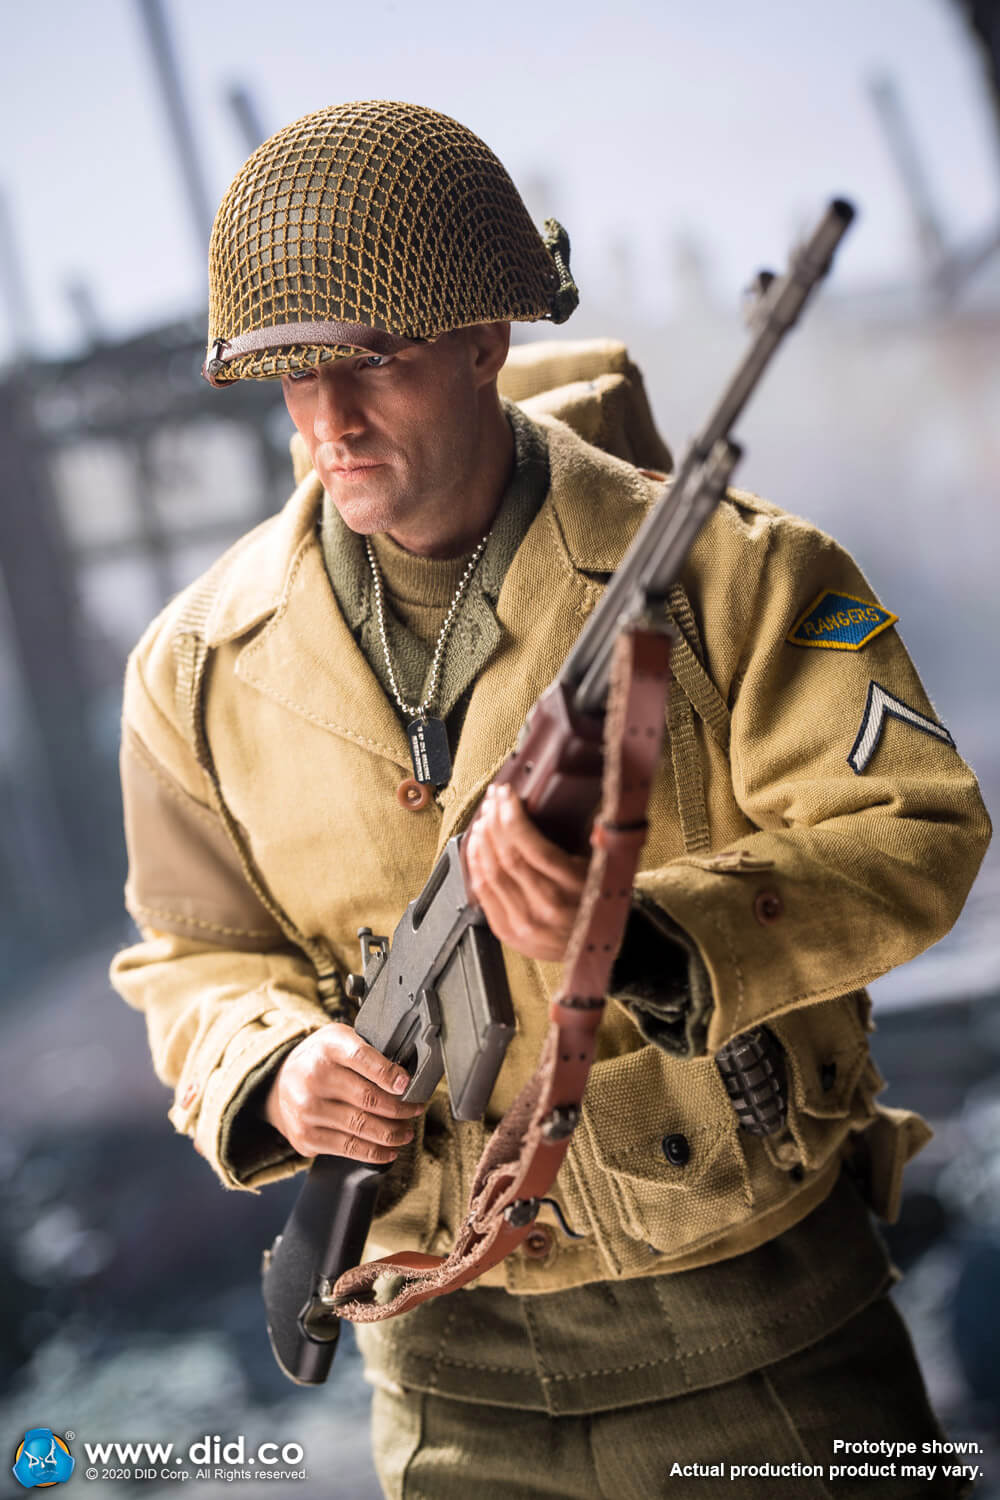 male - NEW PRODUCT: DiD: A80141 WWII US 2nd Ranger Battalion Private First Class Reiben 1/6 scale figure Us-2nd24